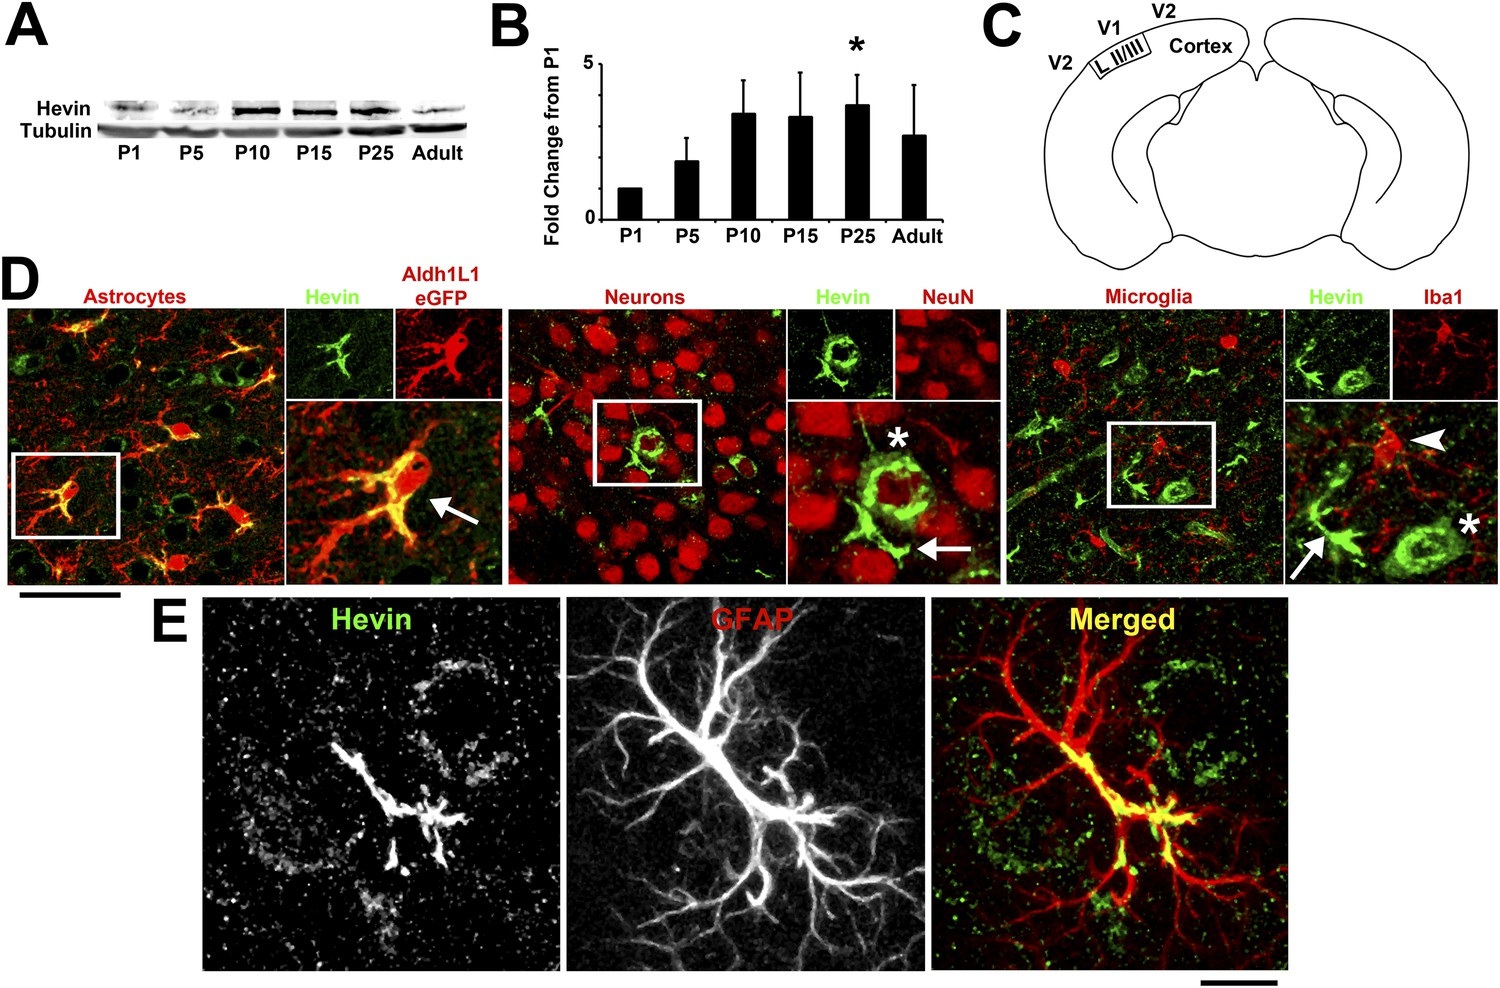 Astrocytes Refine Cortical Connectivity At Dendritic